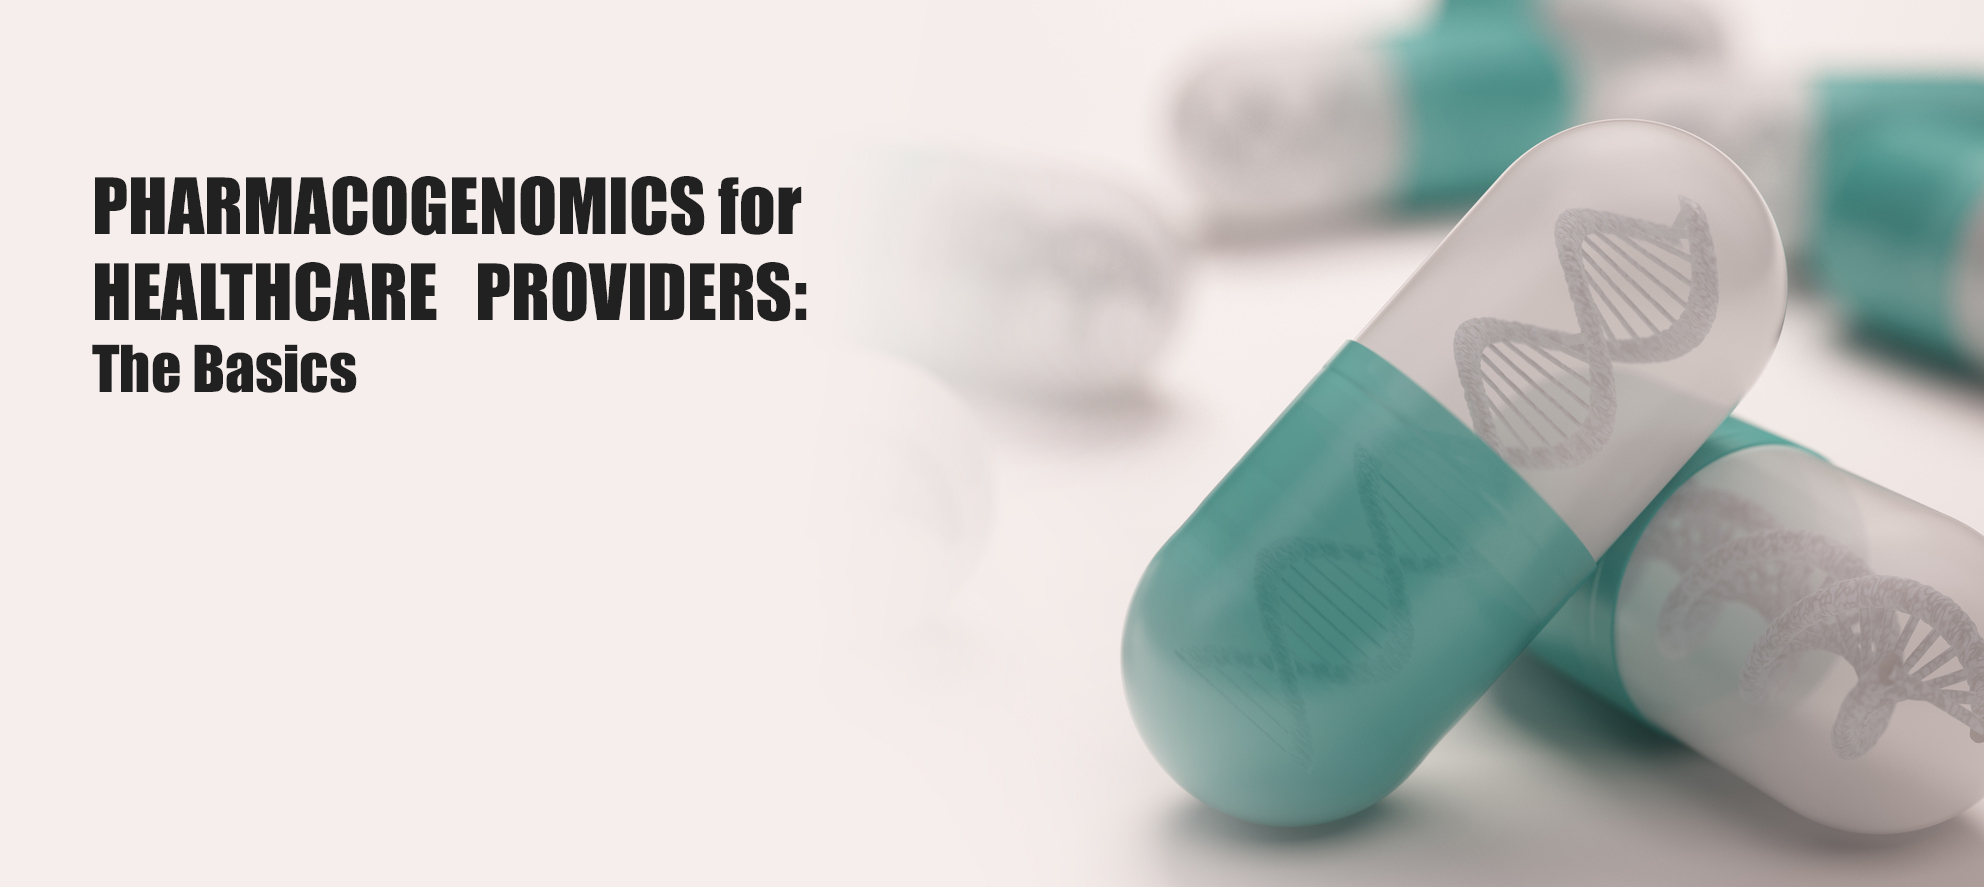 Pharmacogenomics for healthcare providers: the basics